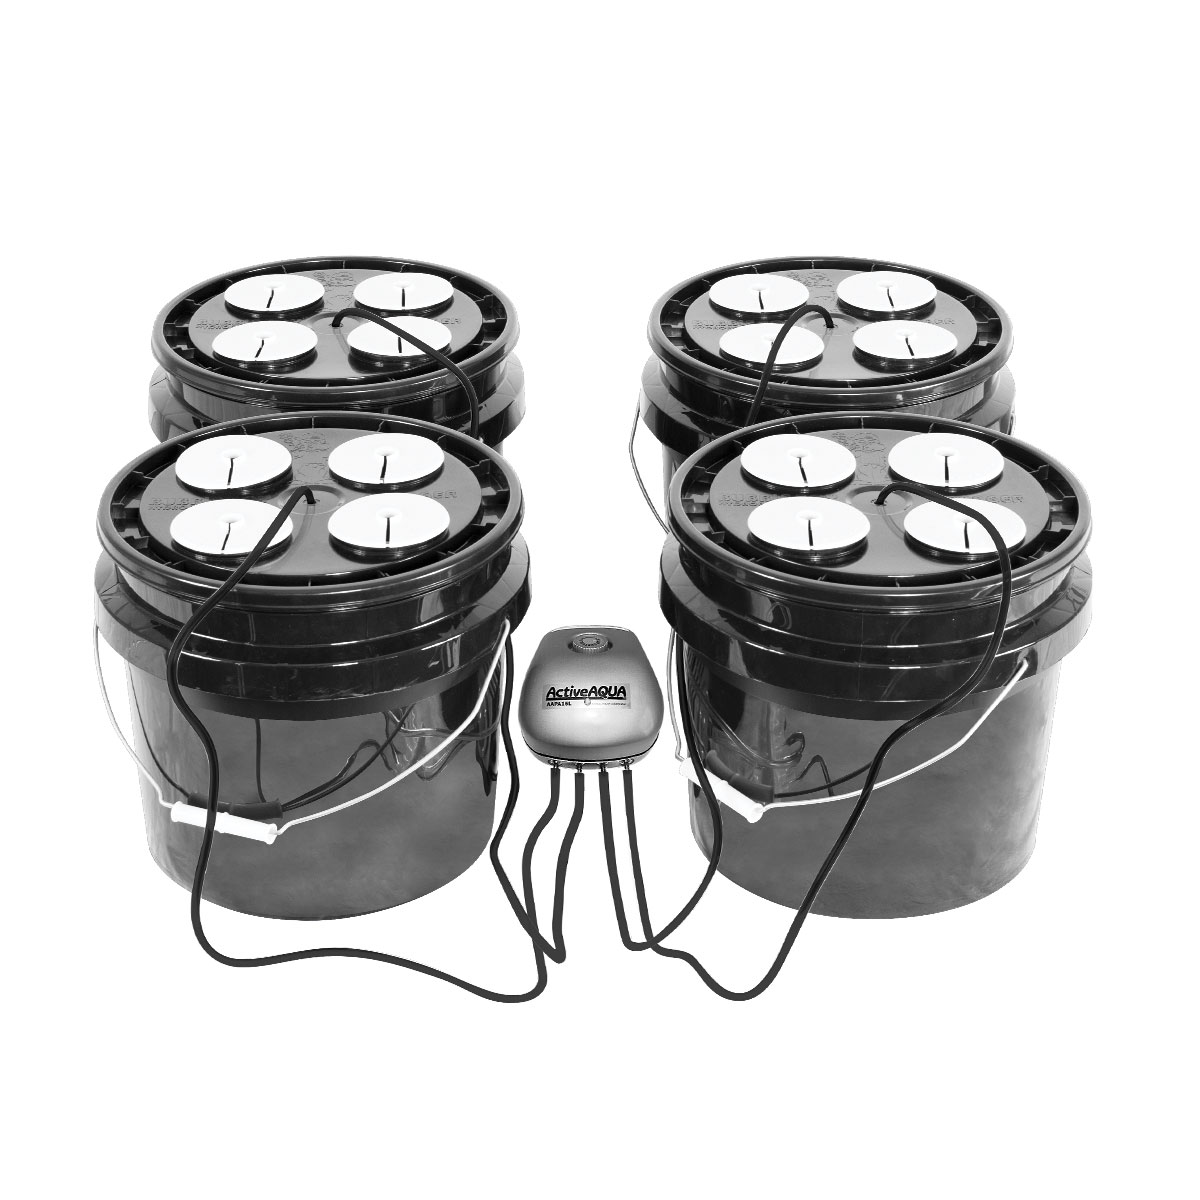 Bubble Brothers 4x4 16 Site DWC Bucket System